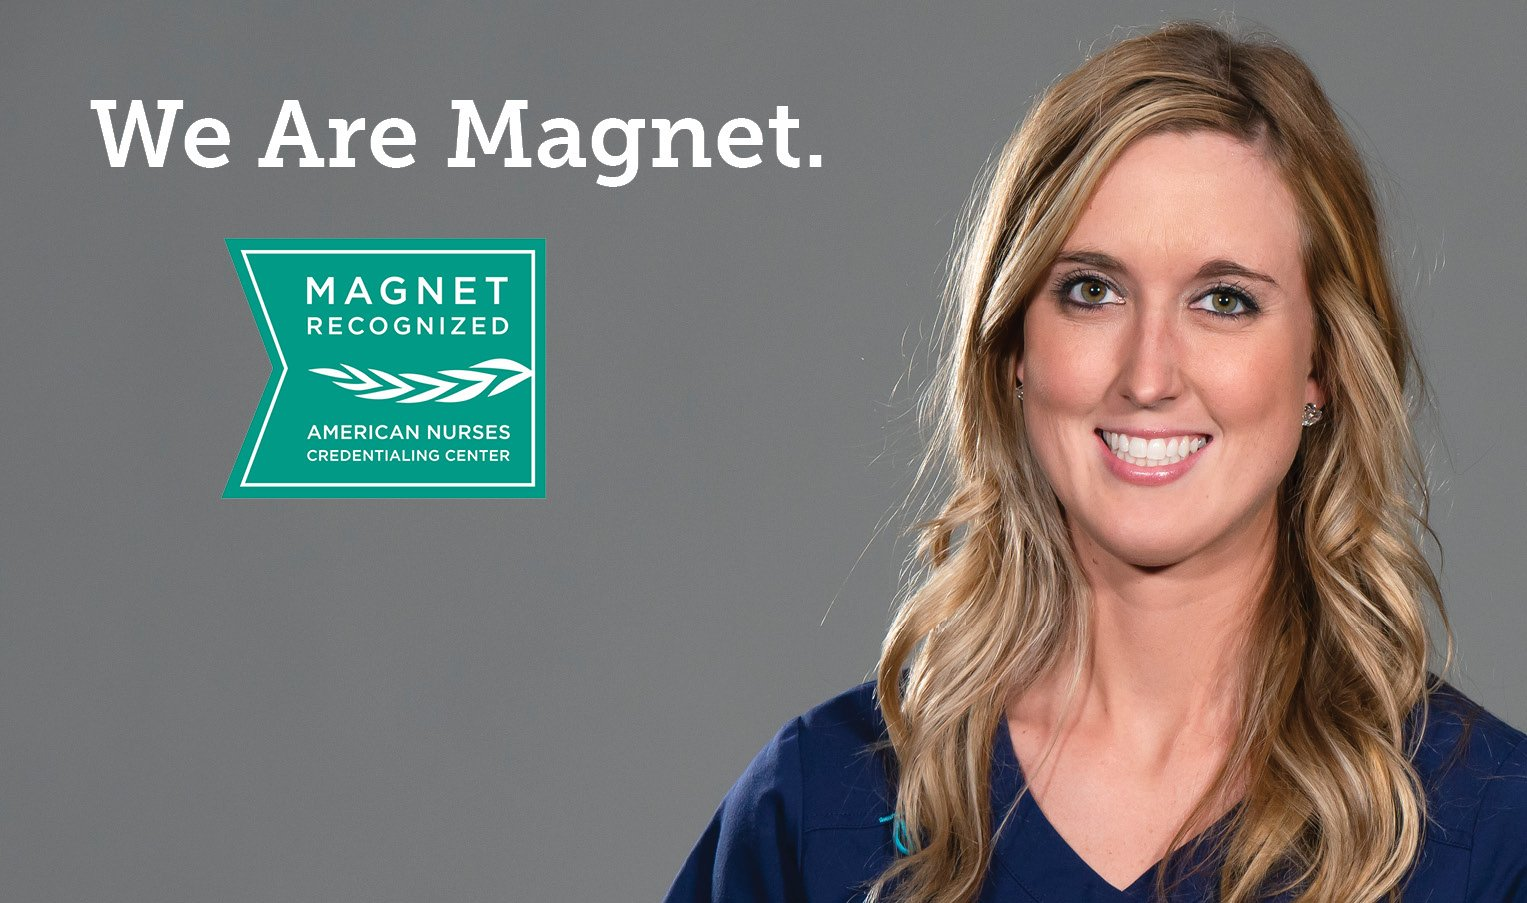 We Are Magnet. Taylor, BSN, RN in ICCU